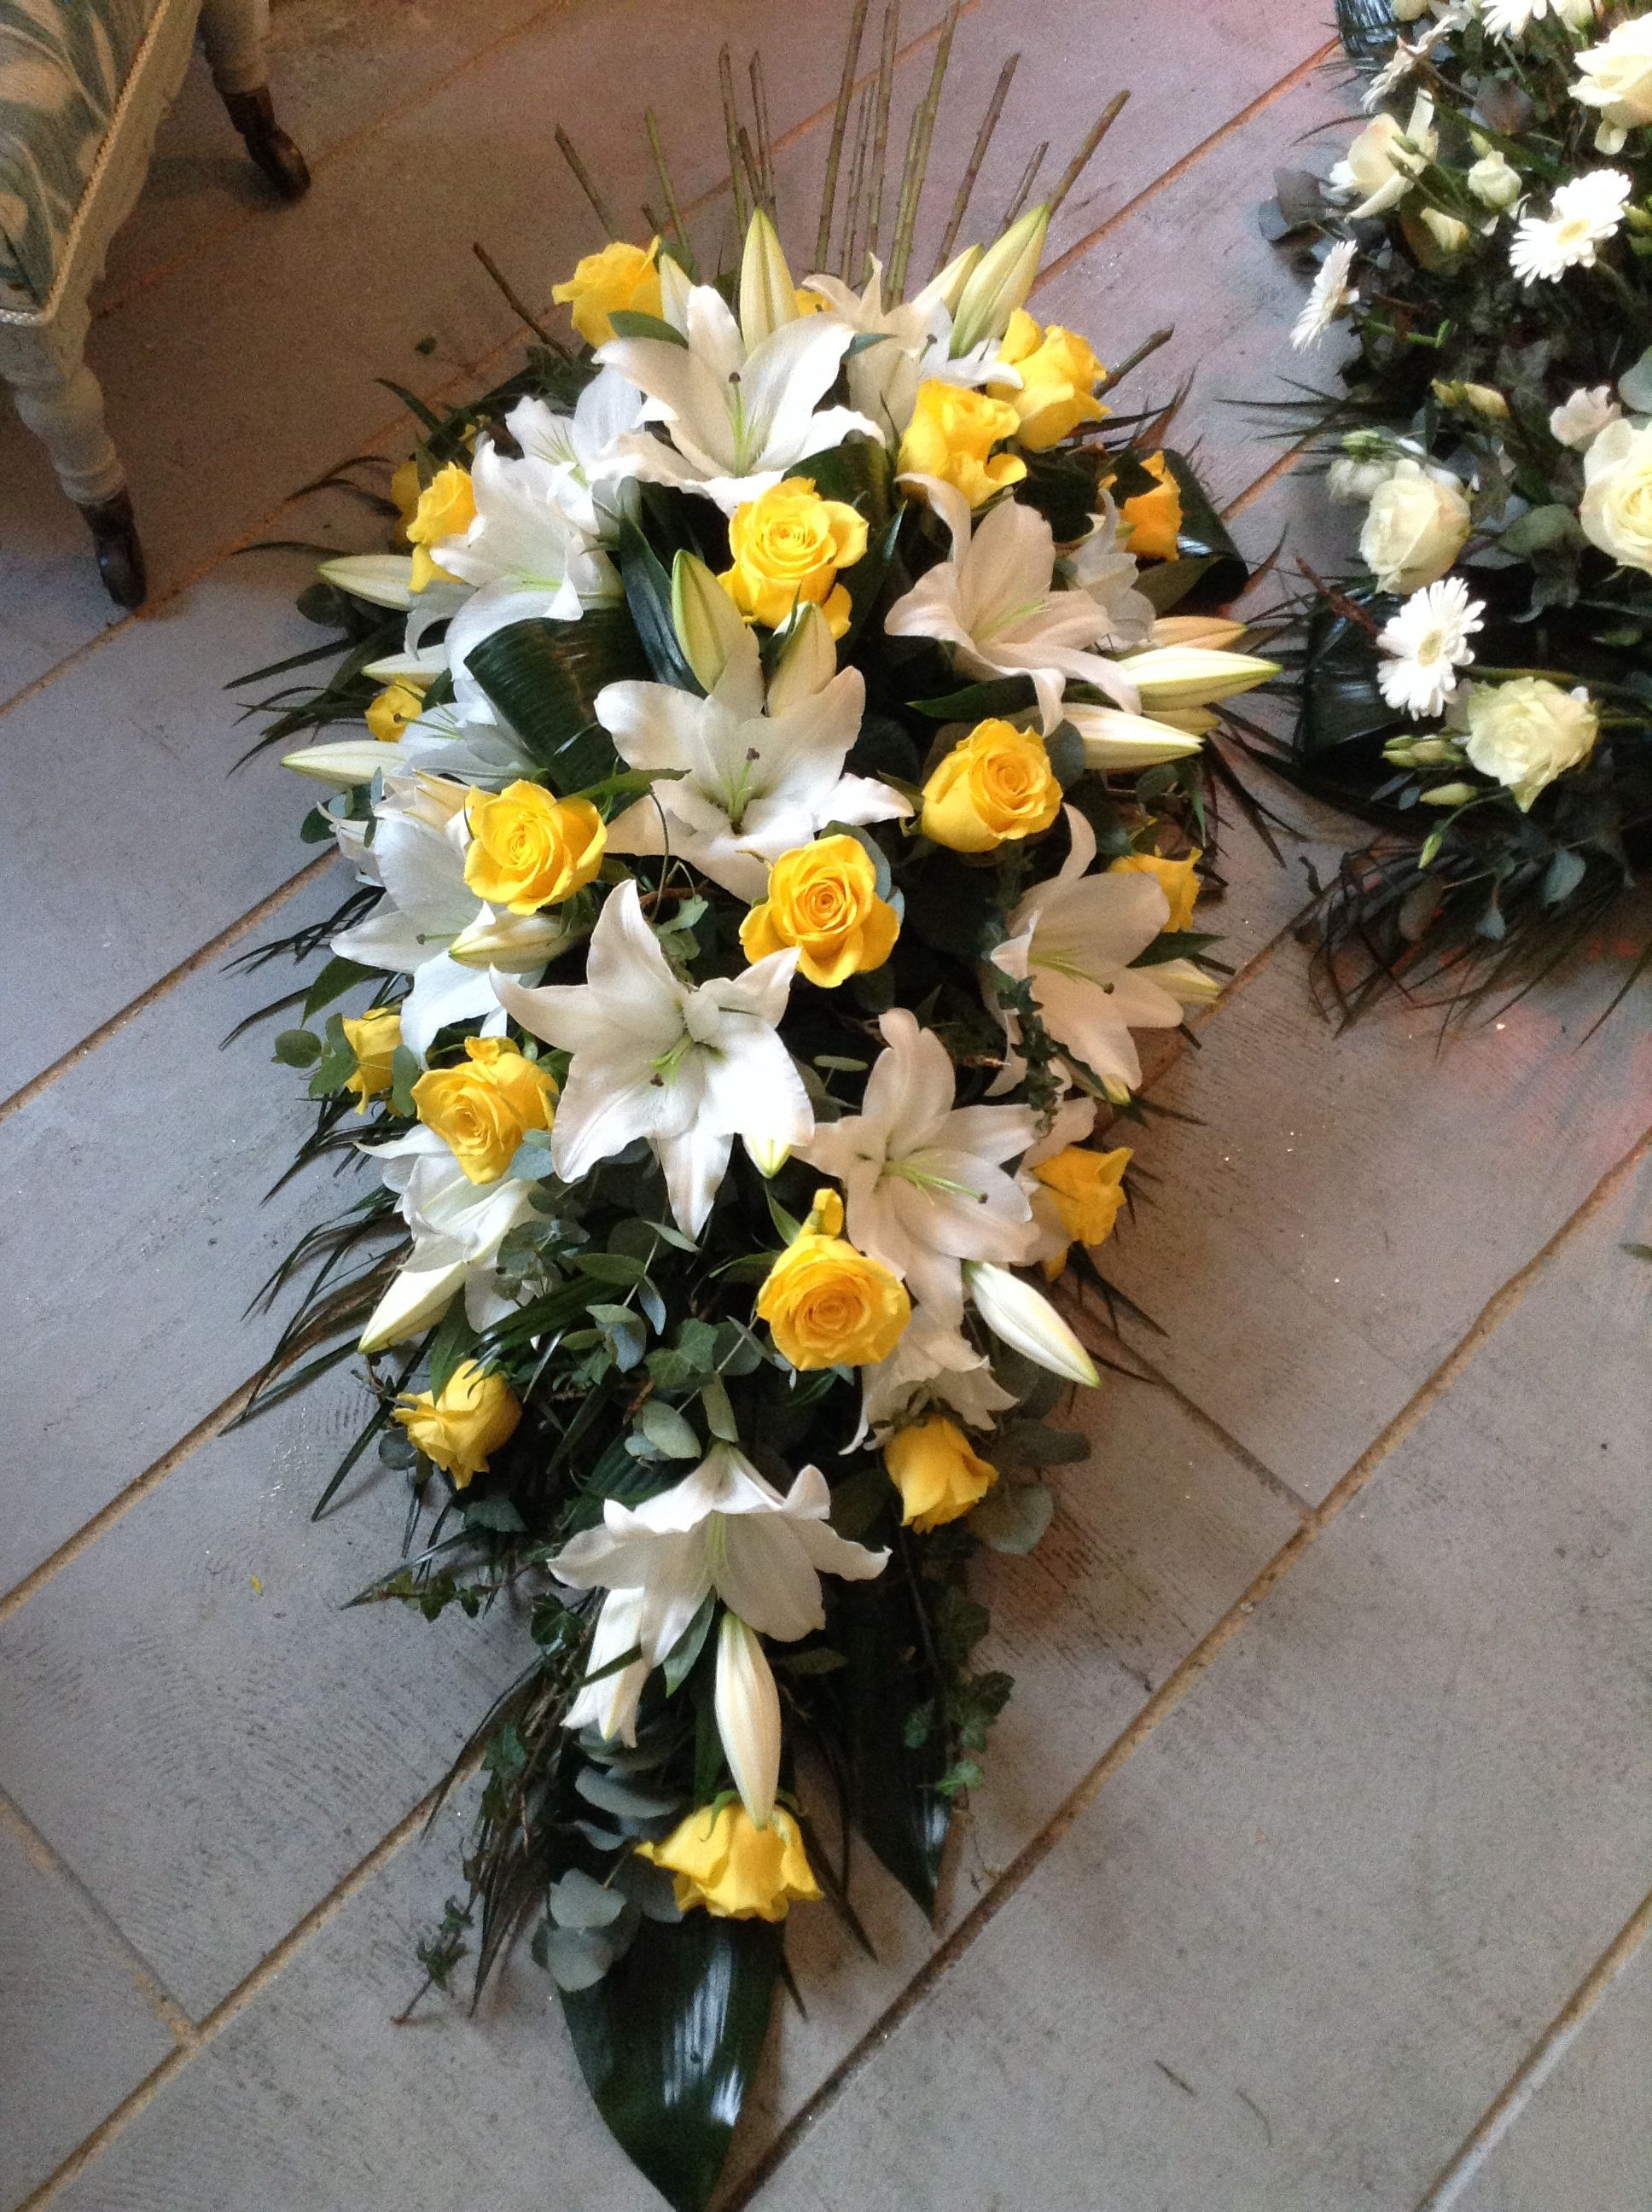 Funeral Flowers White lily and yellow rose funeral spray casket spray Fune